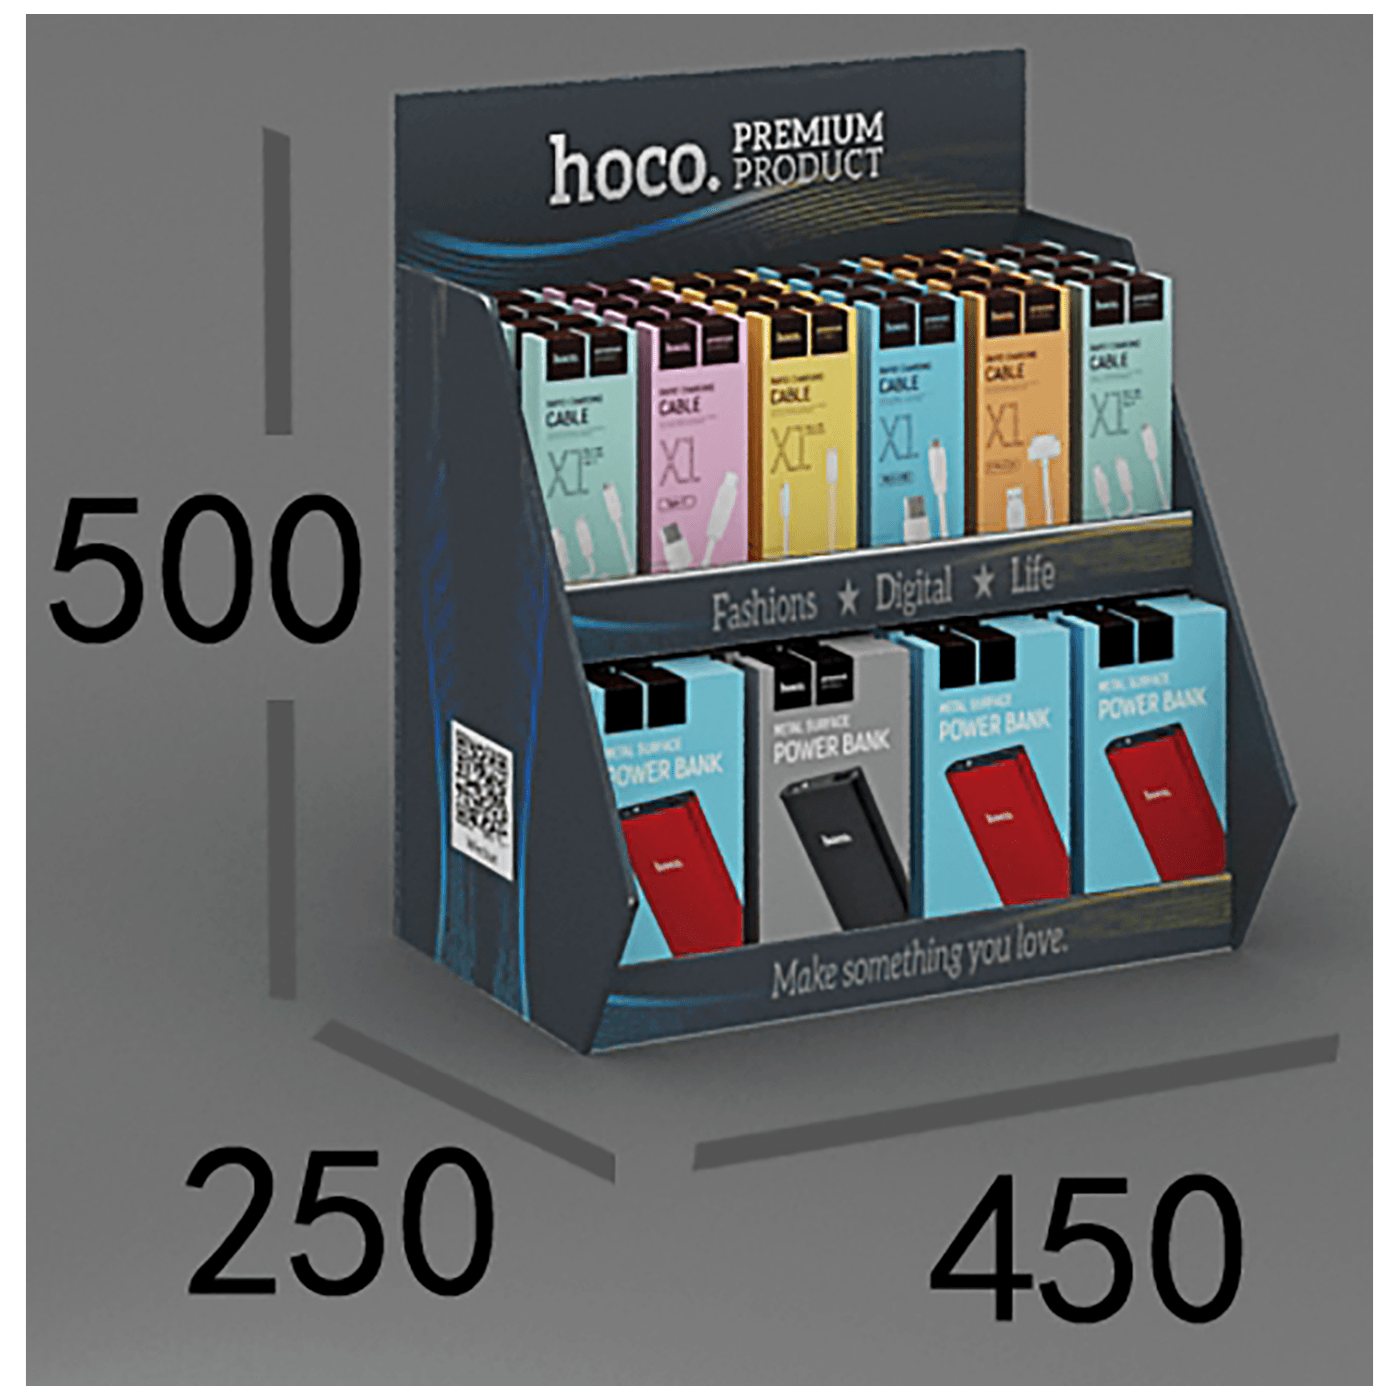 hoco. - Promotional desktop carton shelf3.0